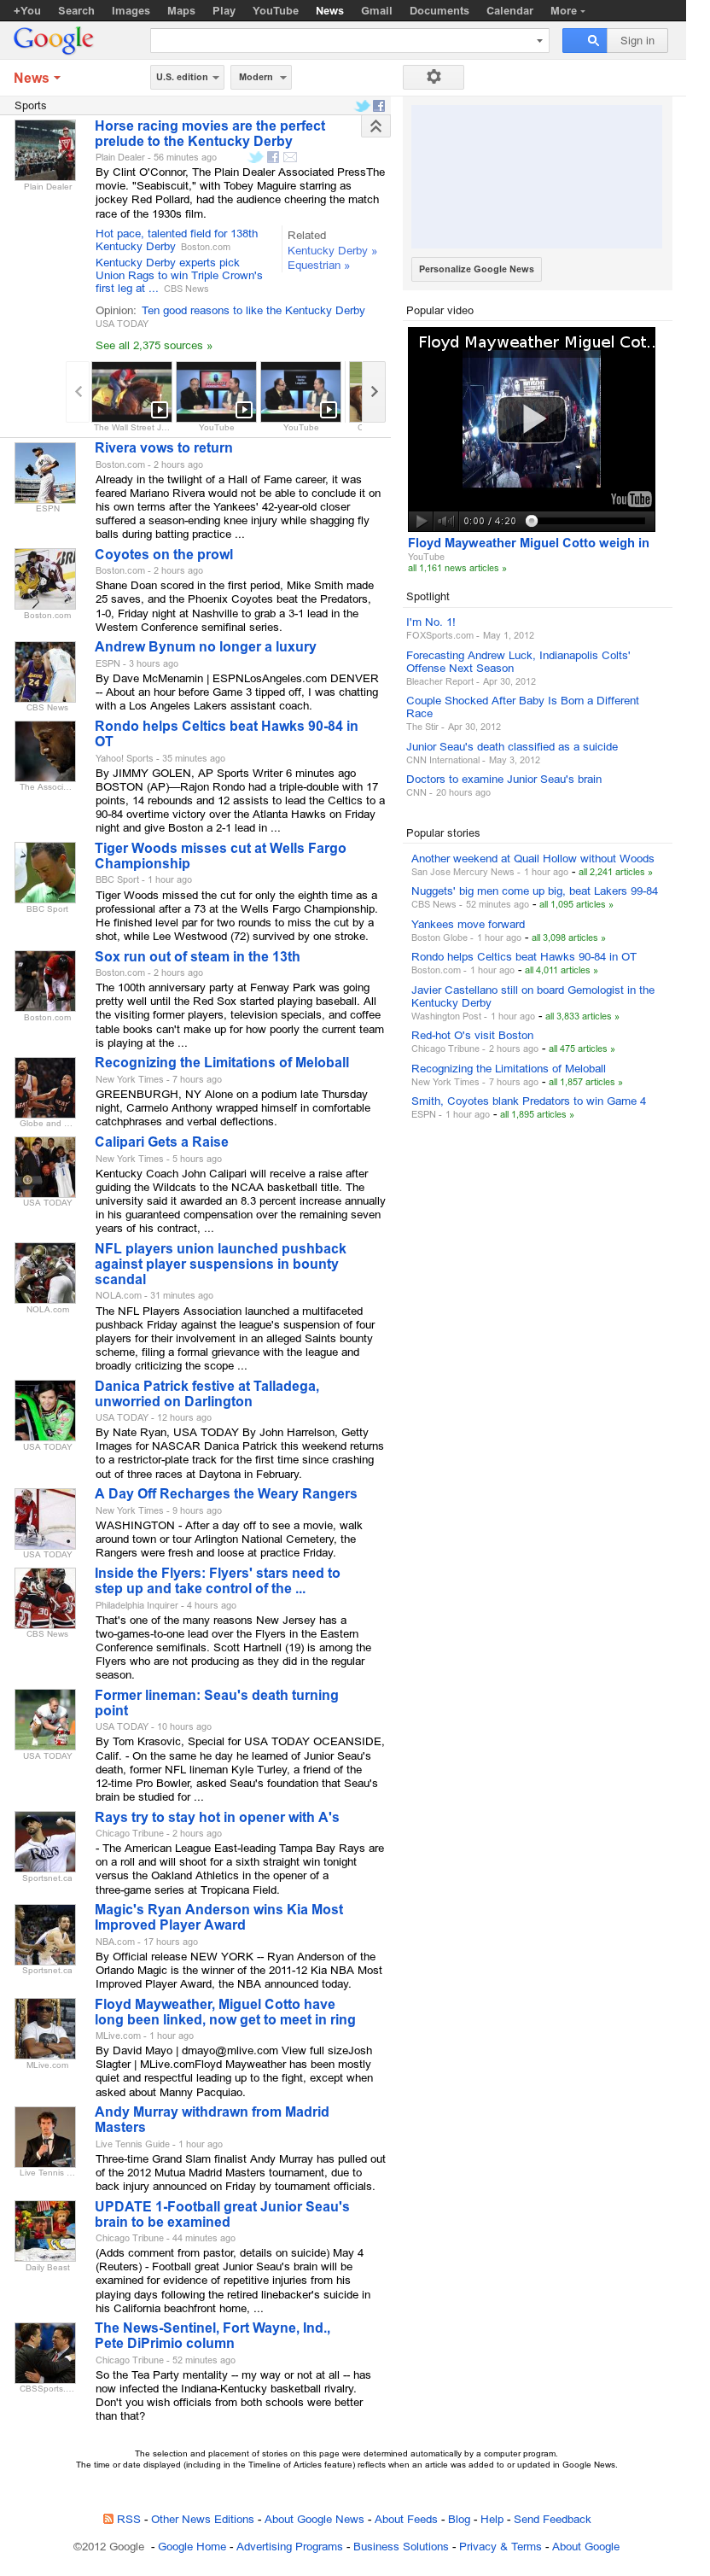 Google News: Sports at Saturday May 5, 2012, 11:06 a.m. UTC